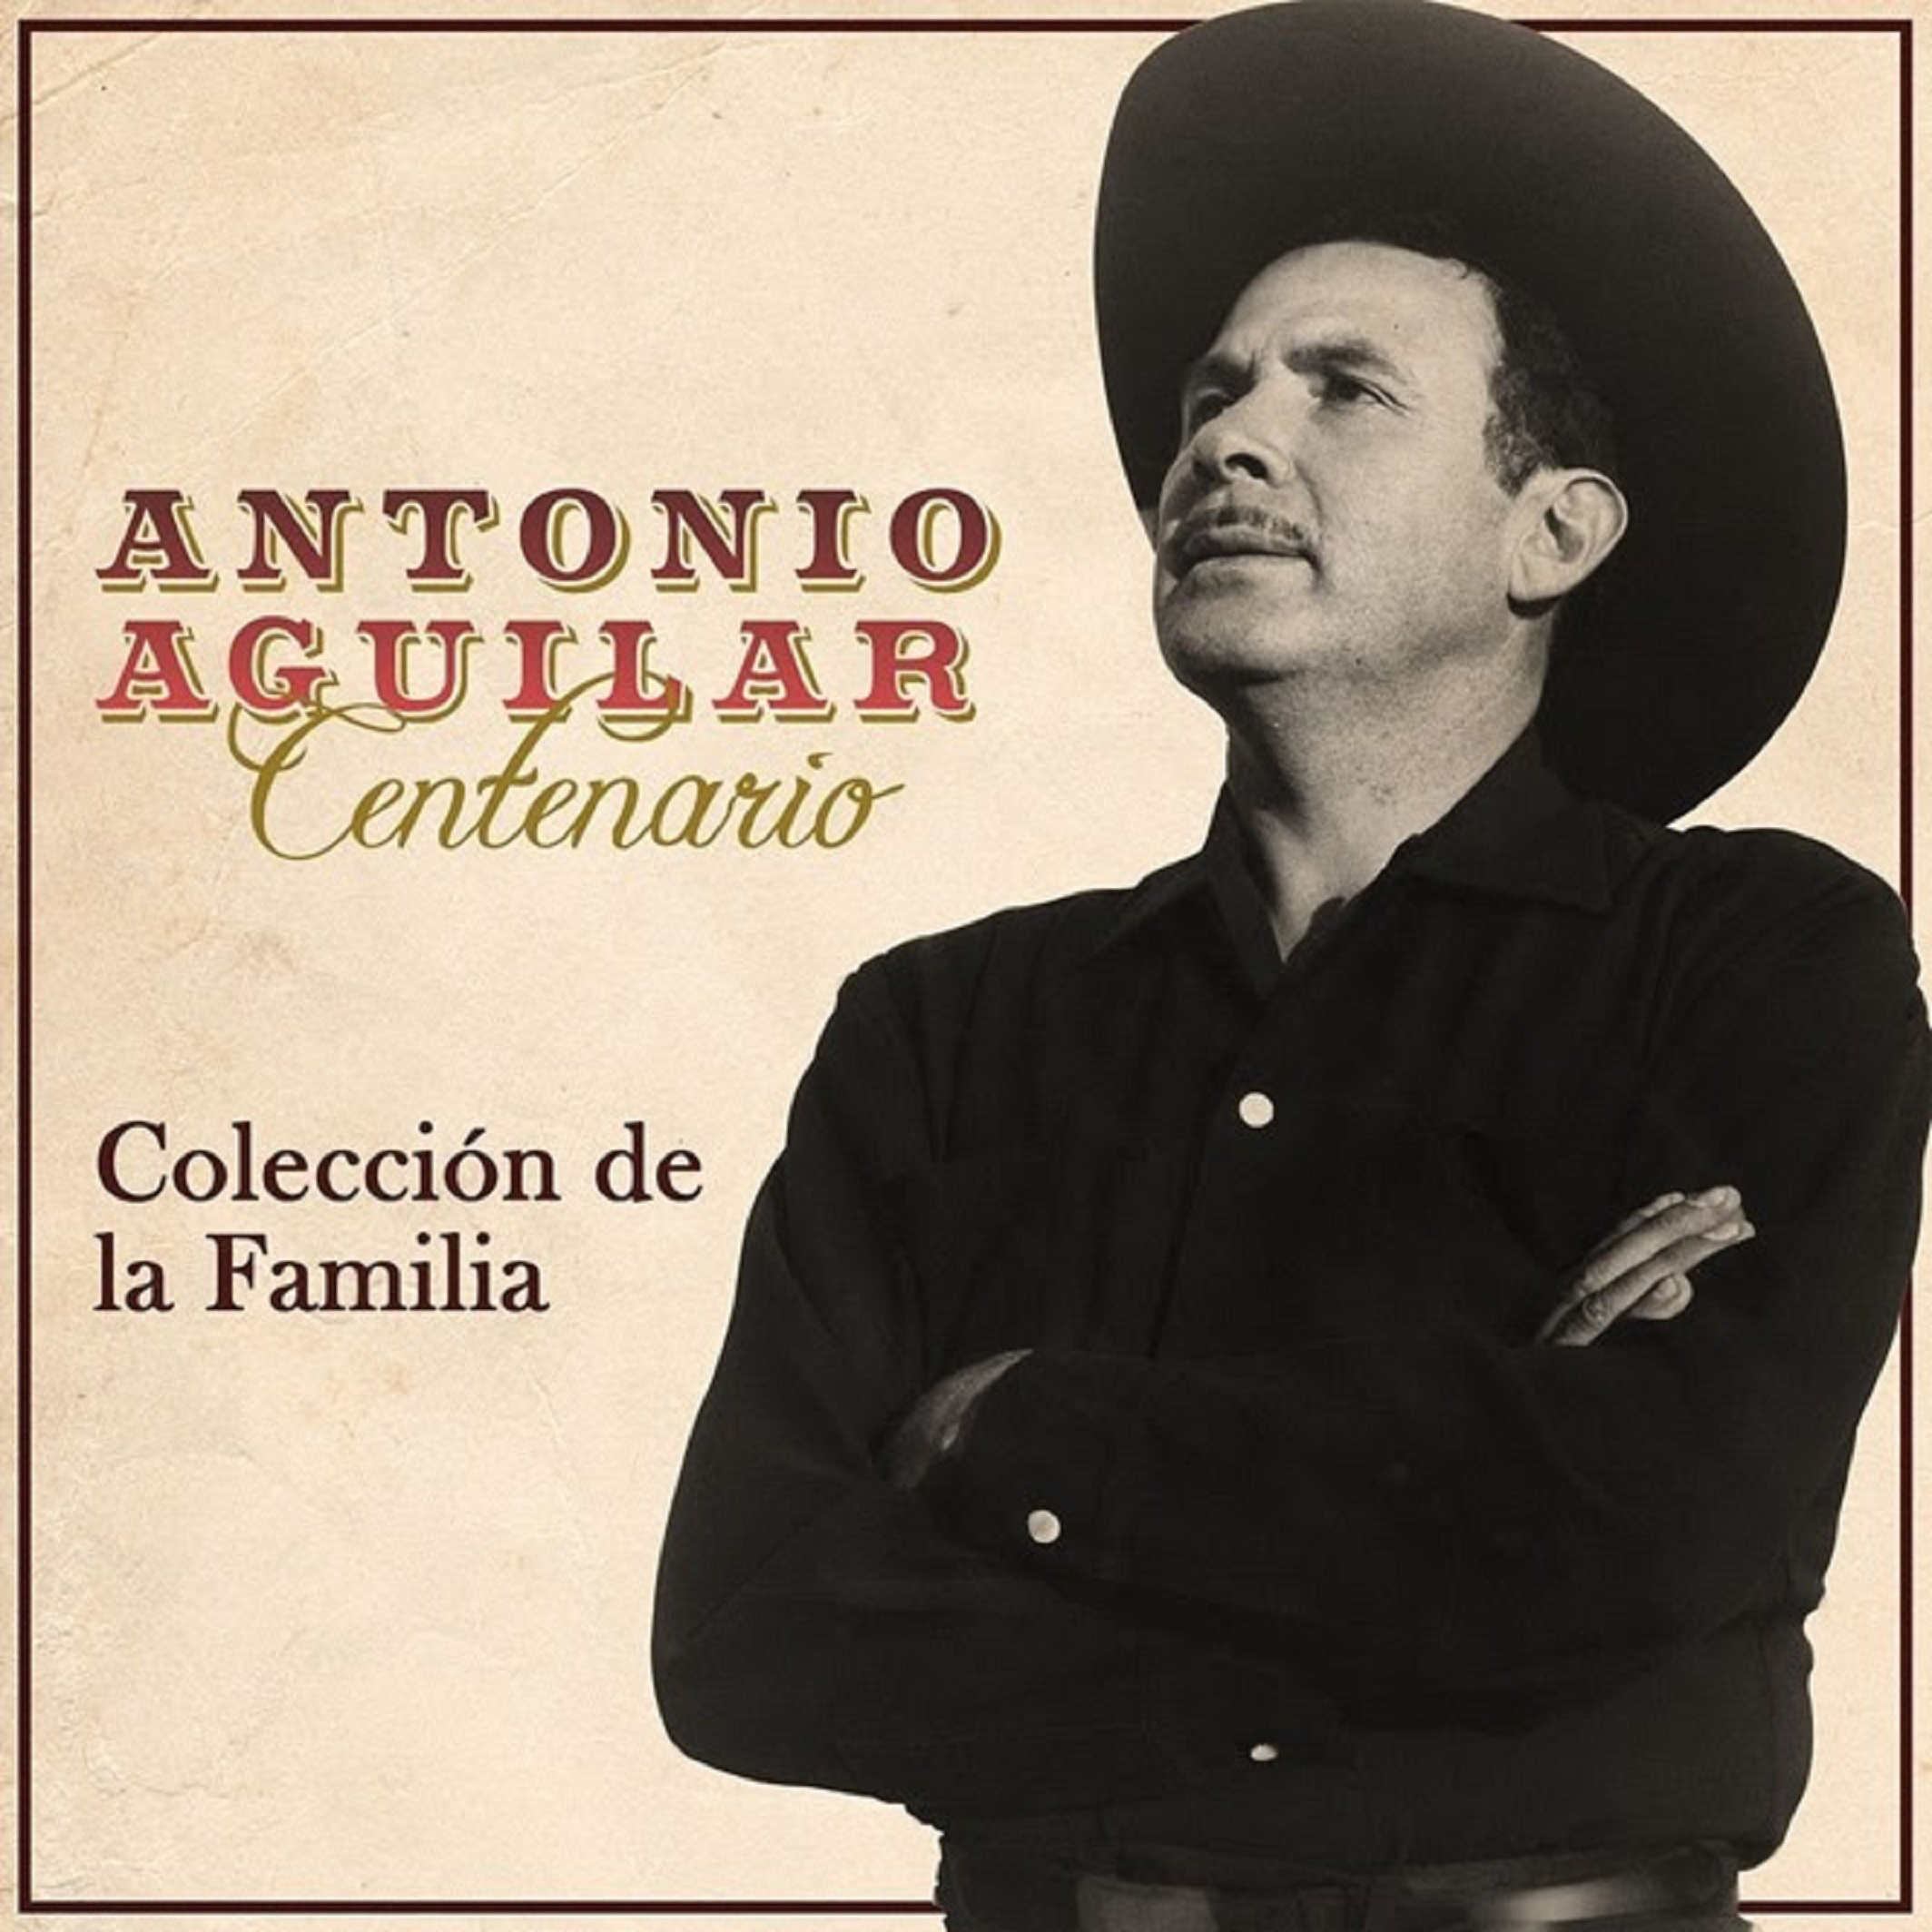 Craft Latino kicks off celebration for icon Antonio Aguilar's centennial w/ 100-song playlist